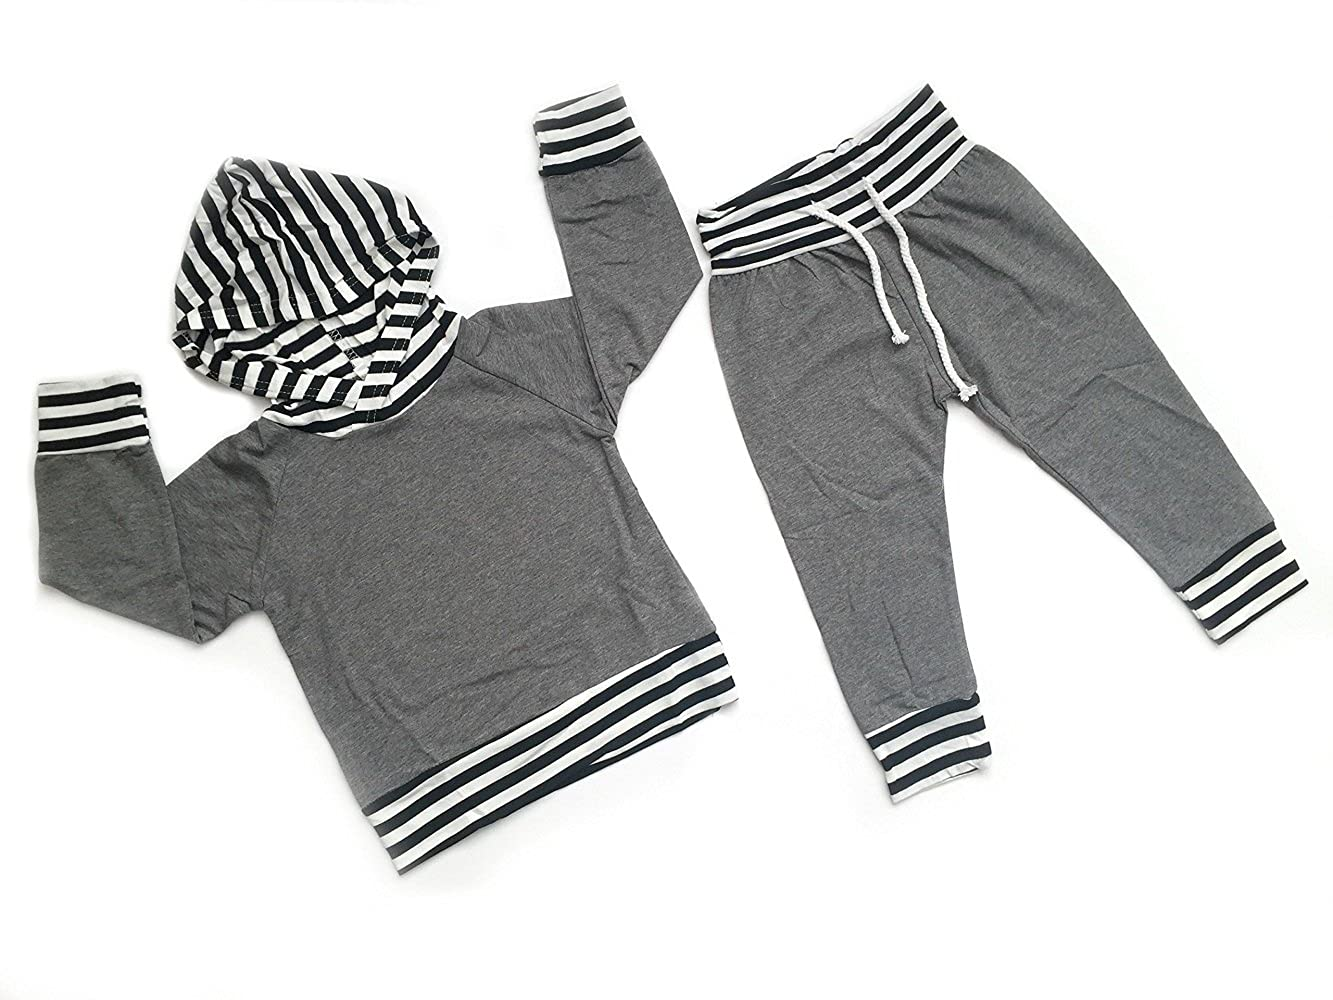 Copper Robin Baby Boys Grey and Striped Hoodie Sweatshirt and Pants Set Sweatsuit